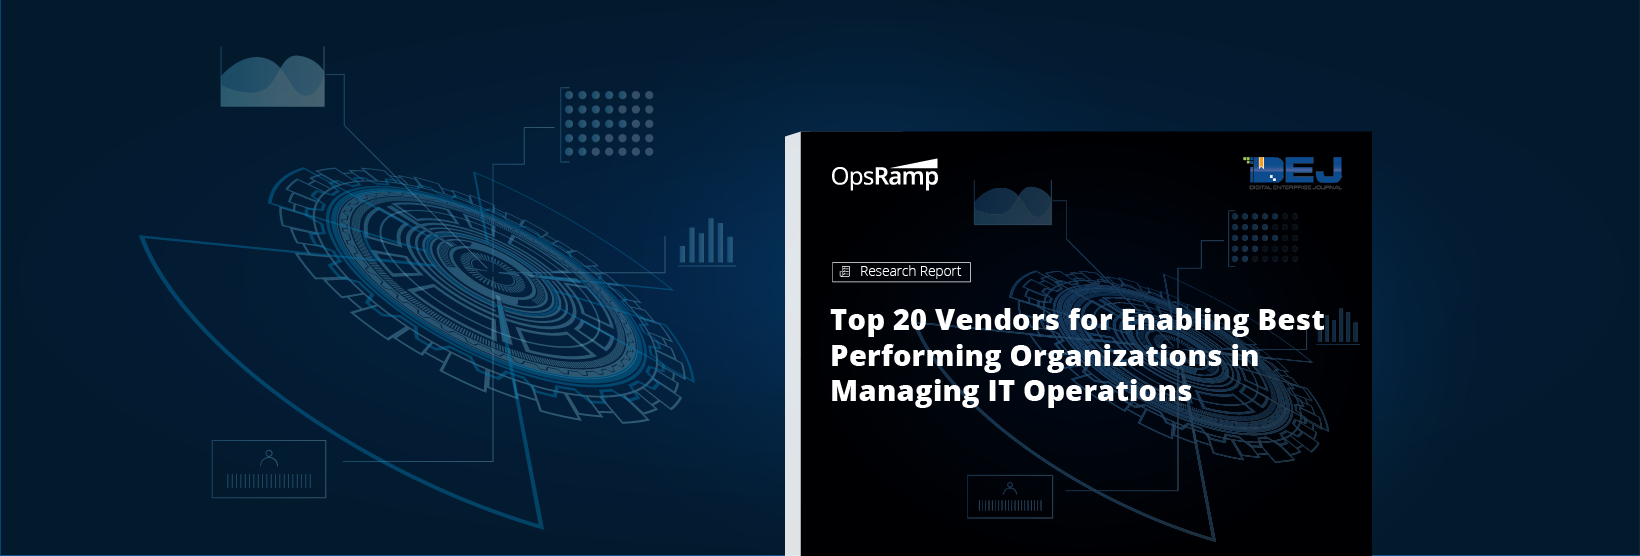 Digital Enterprise Journal, 451 Research, and Gartner Highlight OpsRamp's Platform for Hybrid Infrastructure Monitoring and Service-Centric AIOps